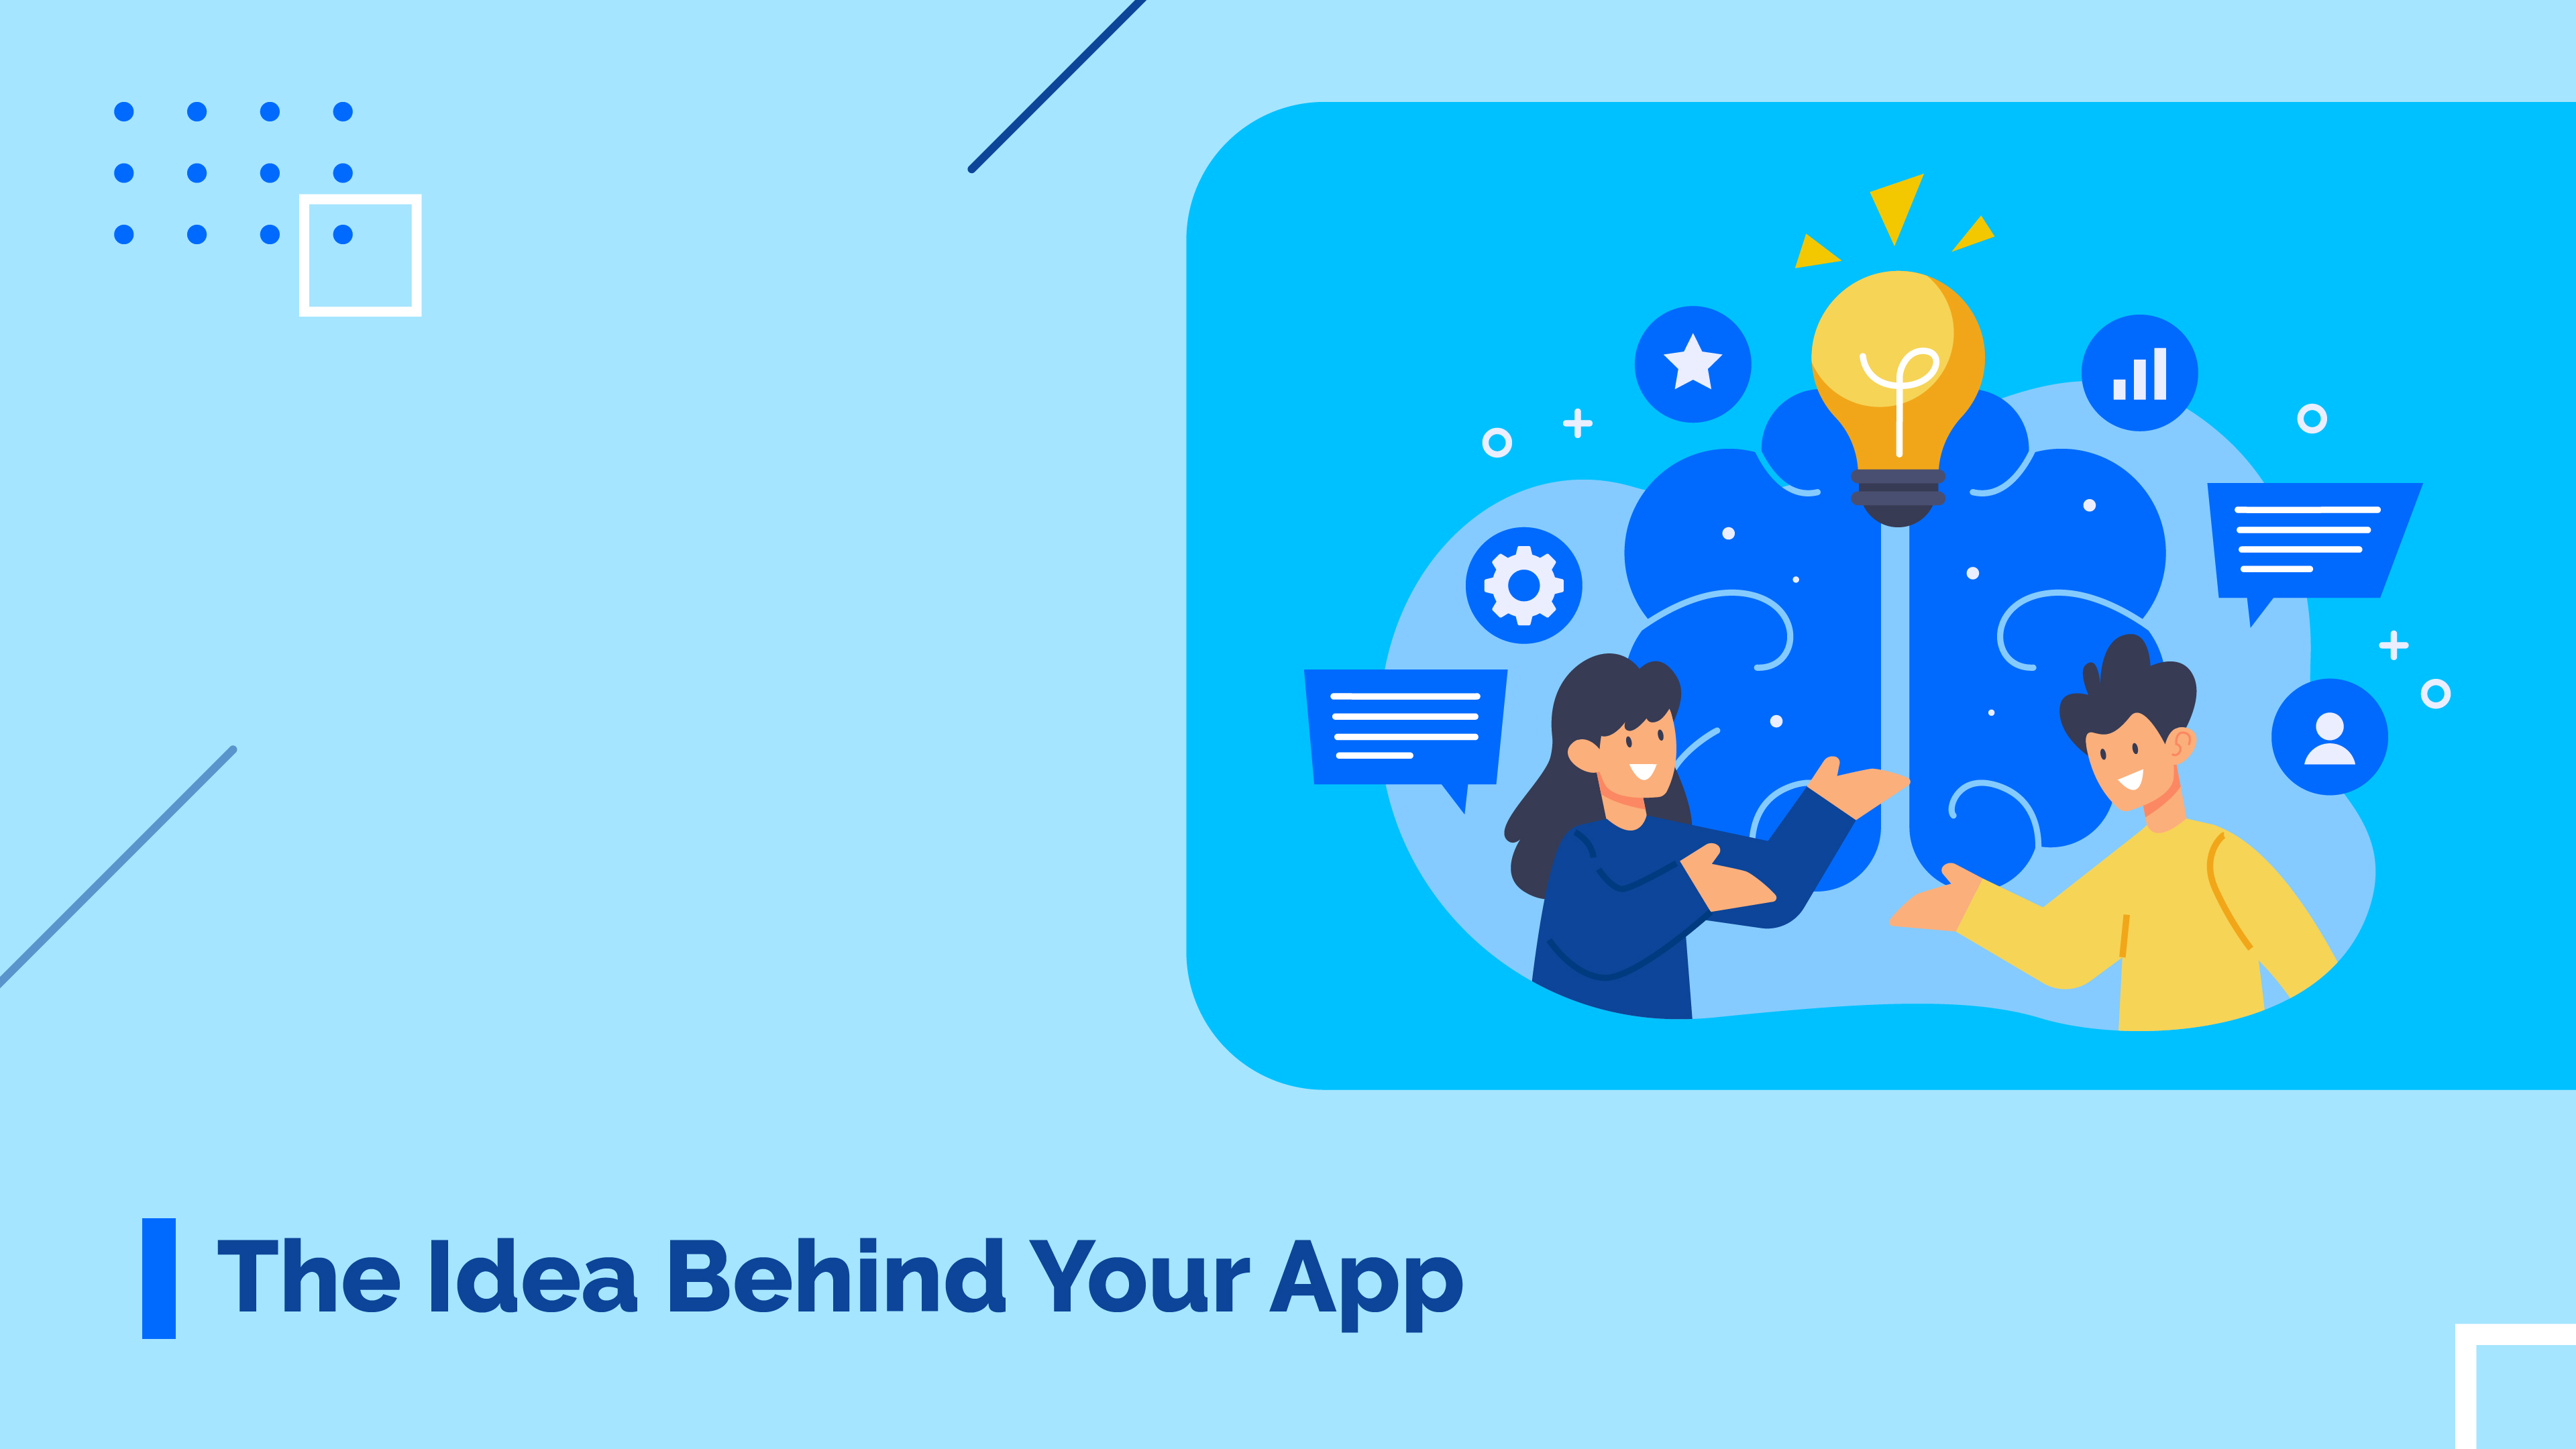 The idea behind your app